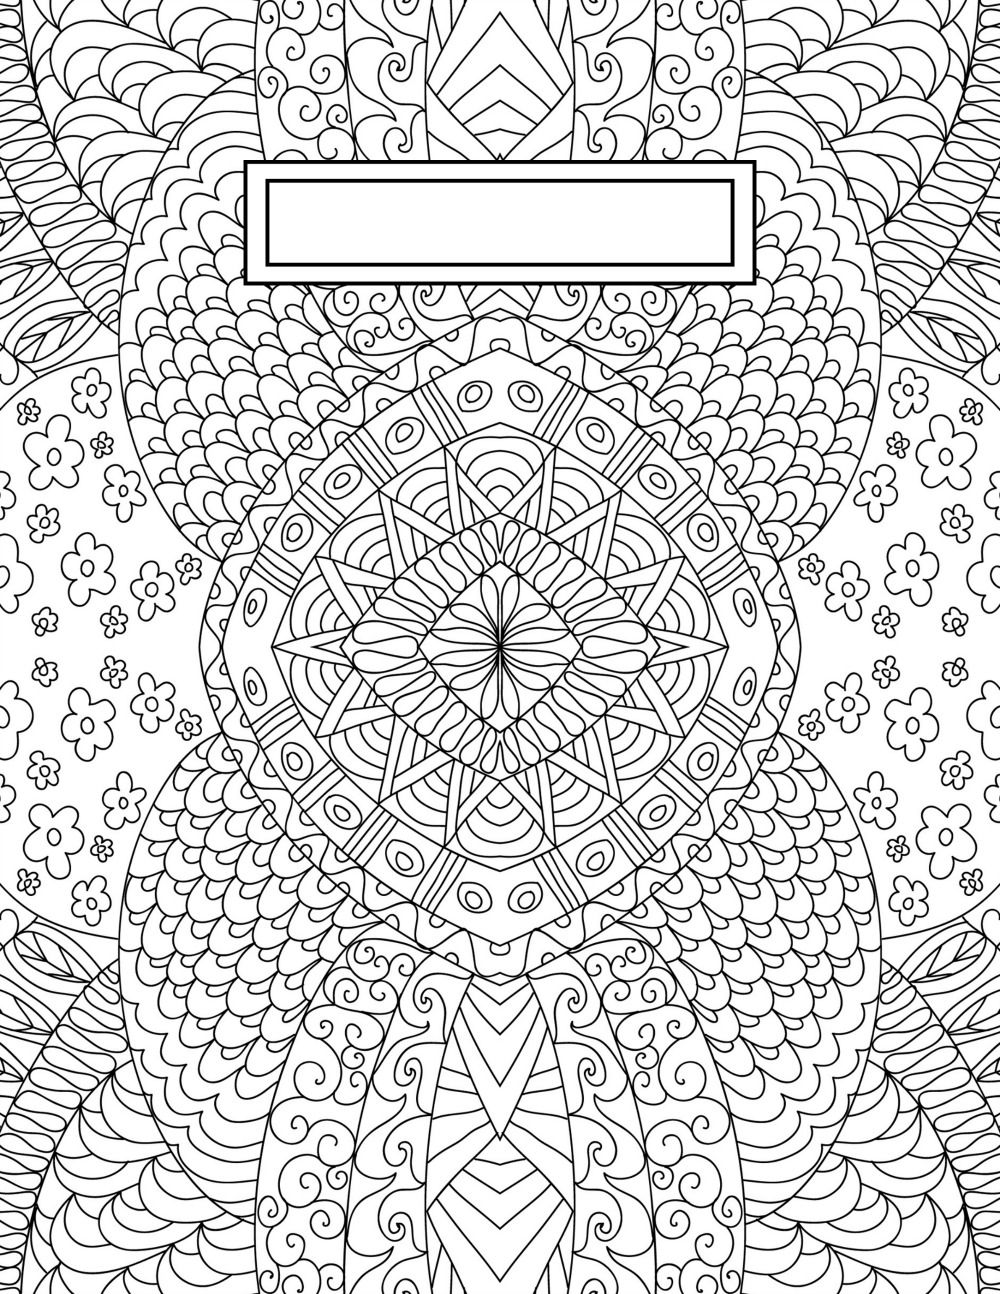 Back to School Binder Cover Adult Coloring Pages | bullet journaling